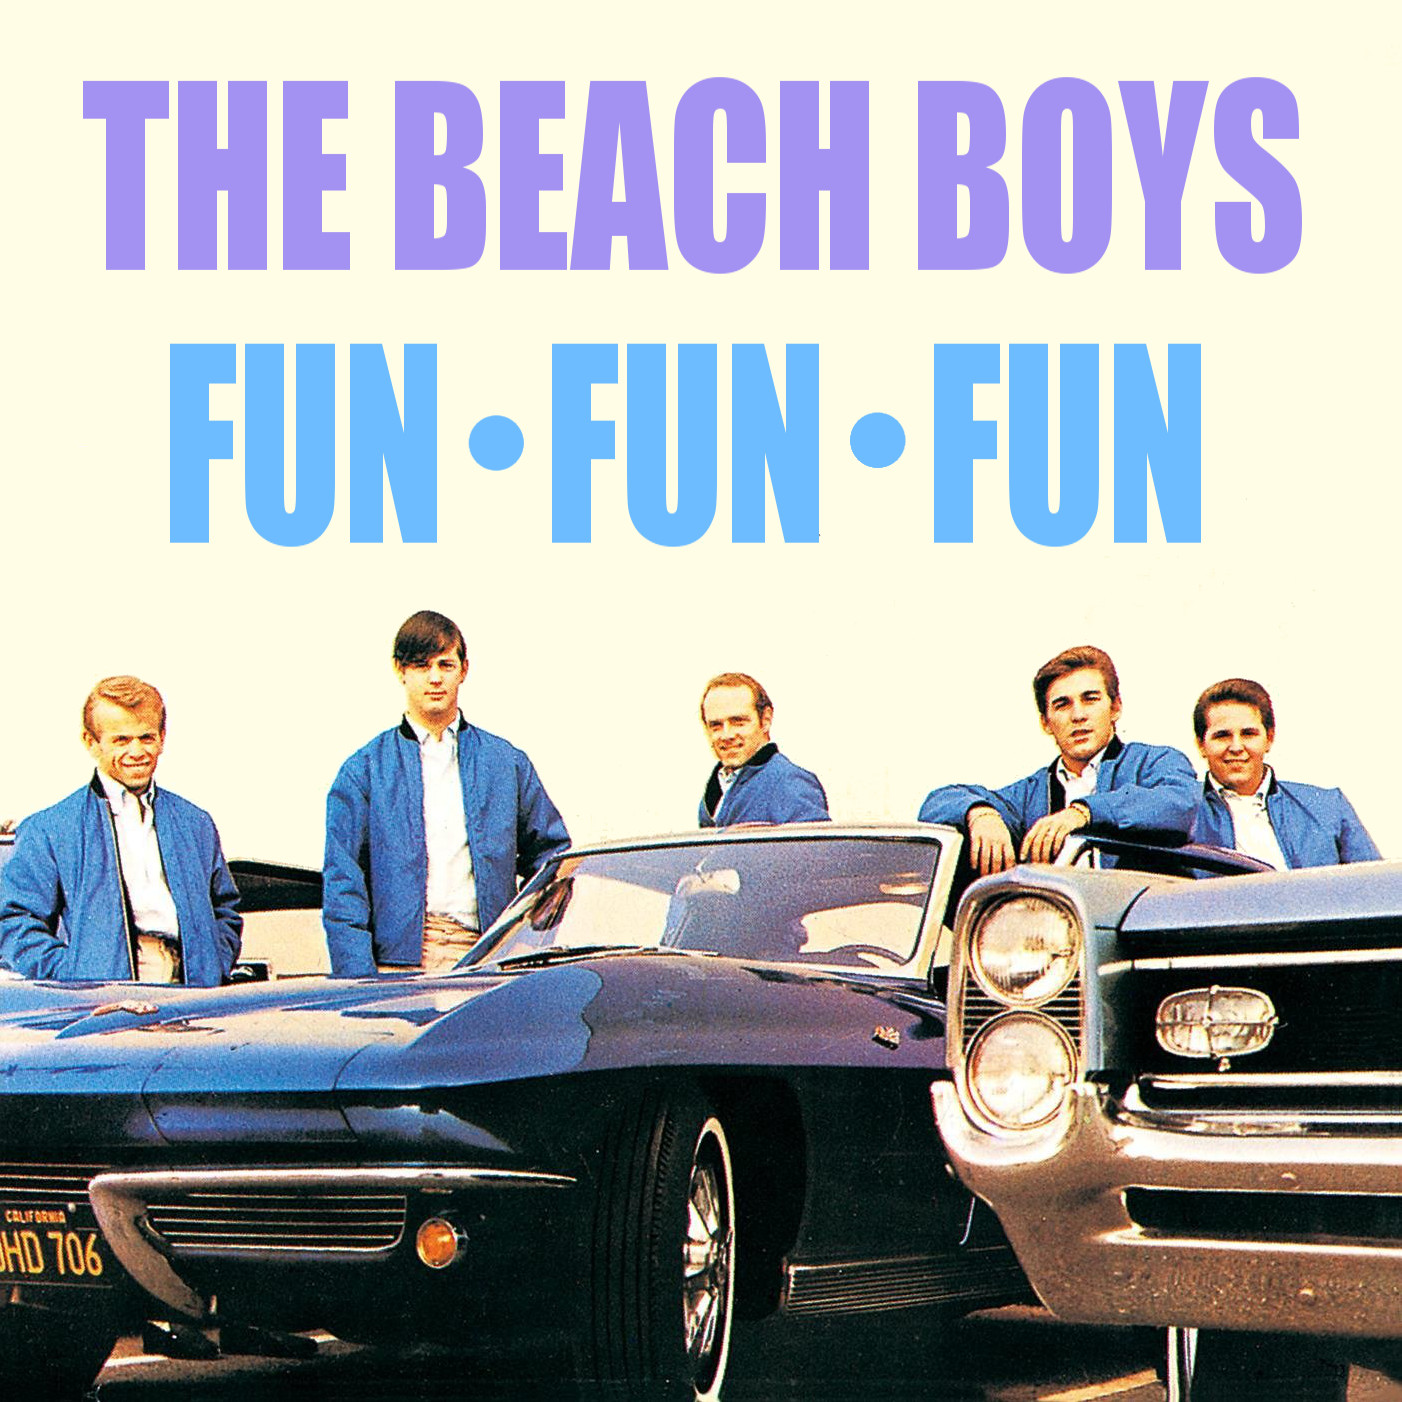 The Beach Boys Fun Fun Fun